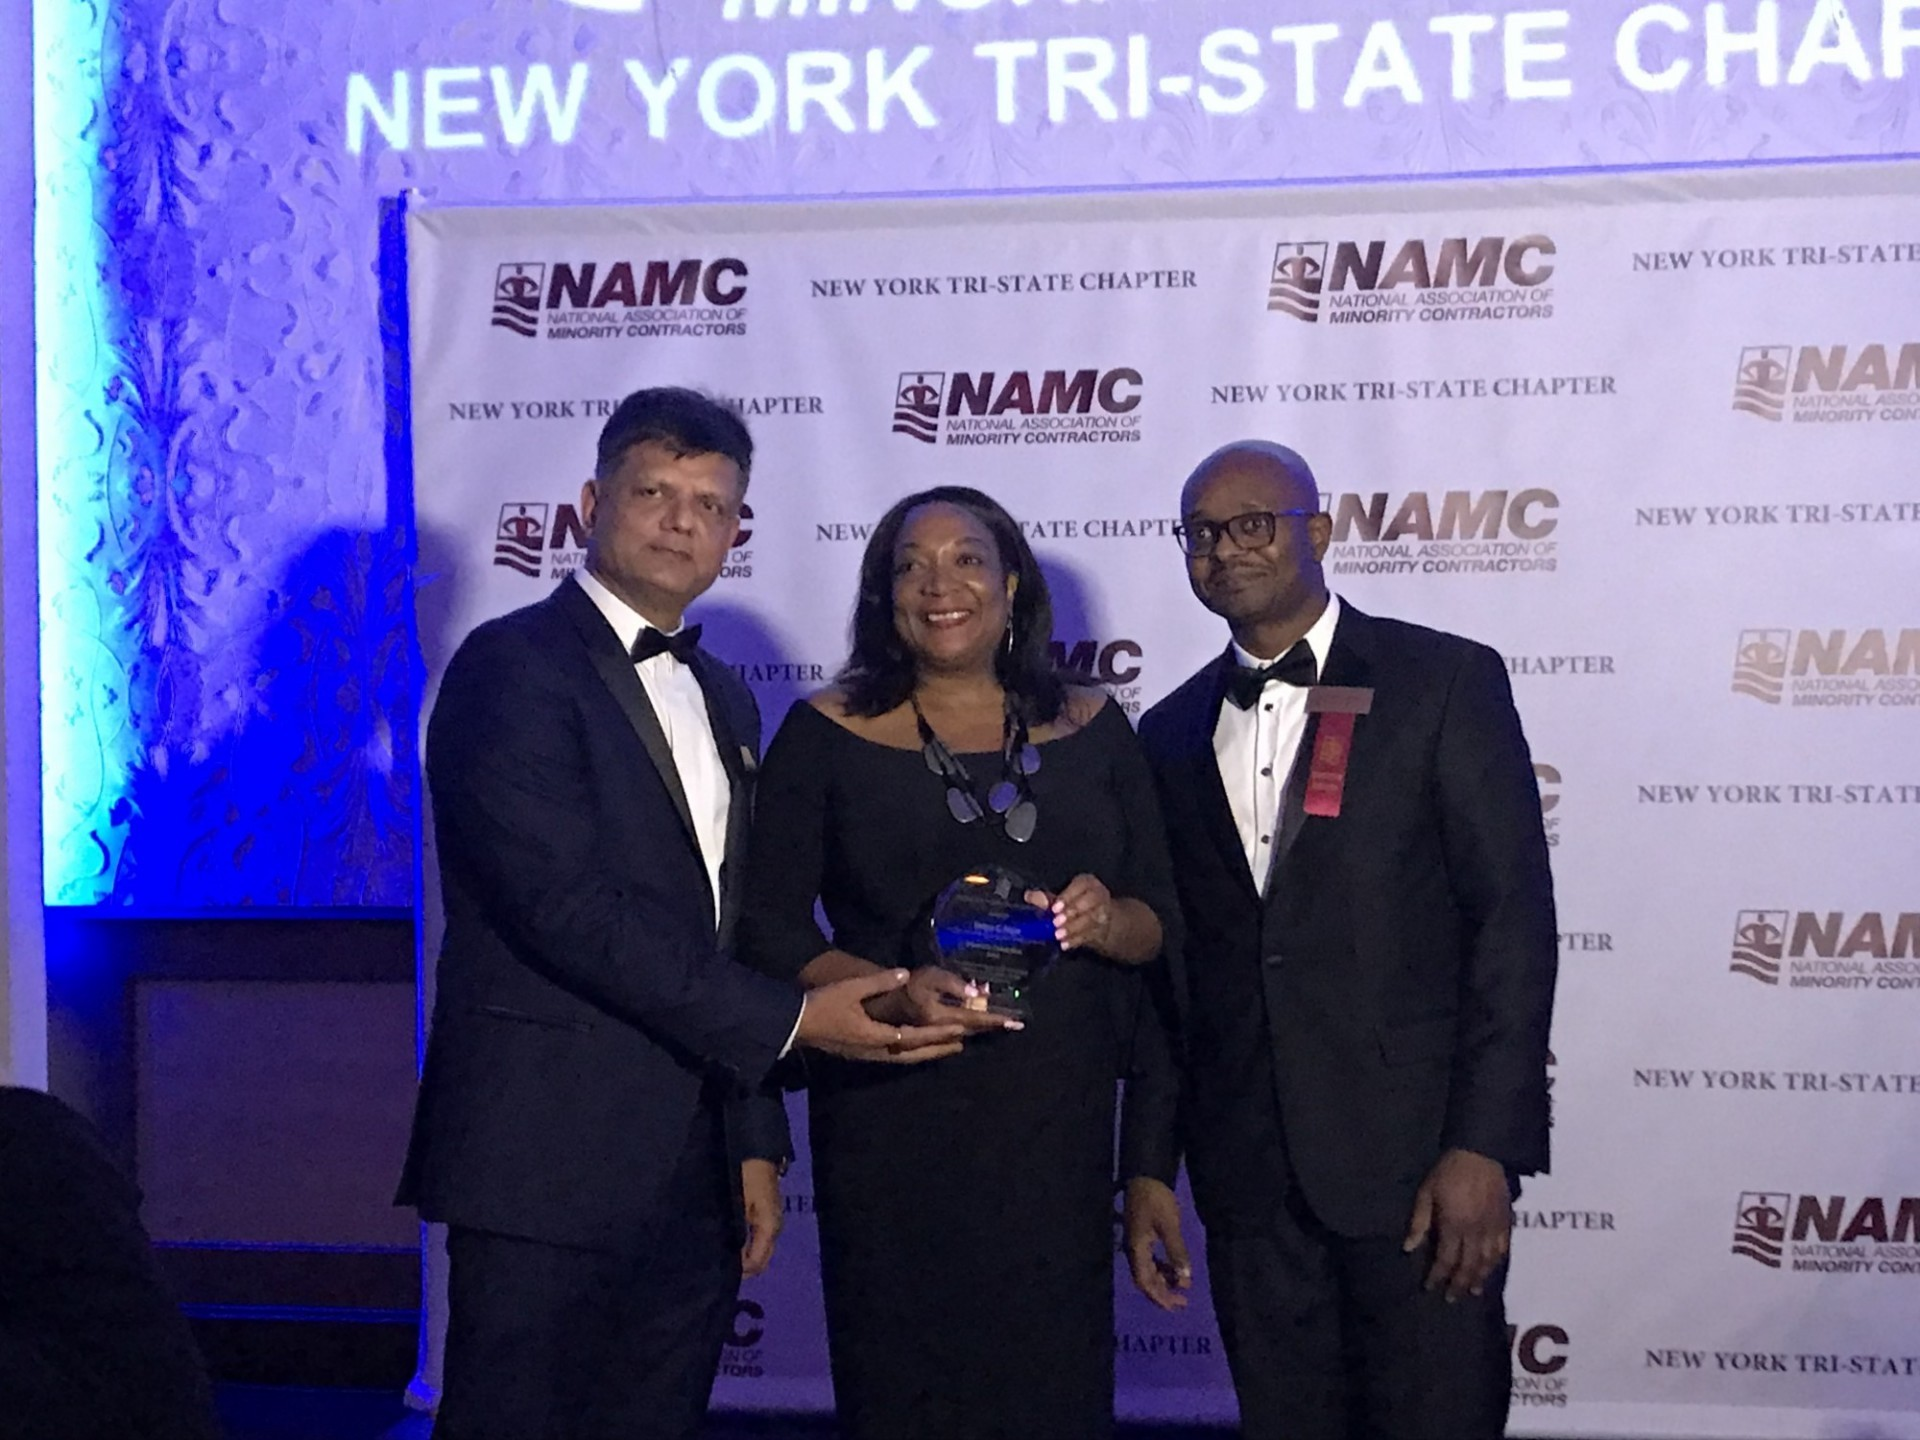 Tanya Pope (center) accepting the Diversity Champion Award from NAMC-NY President Nayan Parikh (left) and Andrew Fisher, an executive member of the organization.